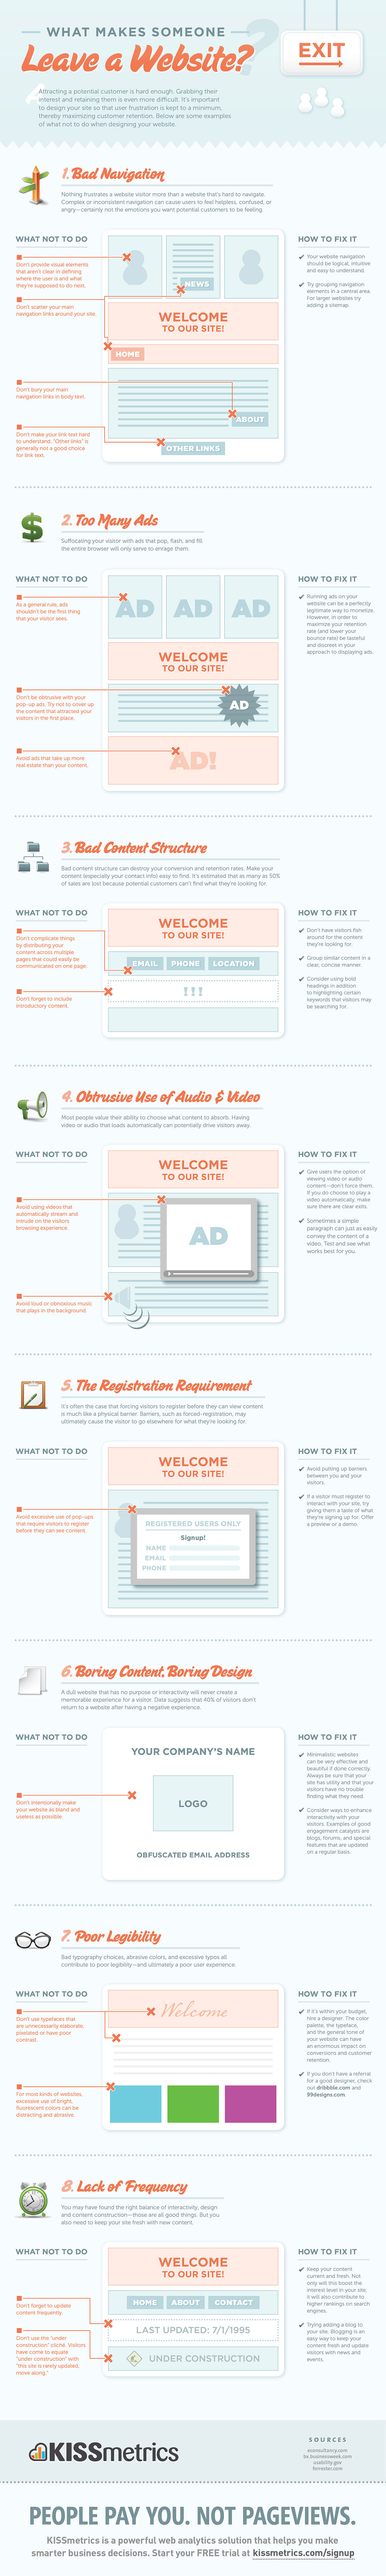 This Images Tell Us A Bad Web Design Has Bad Navigation Too Many Advertisement In Each Page Obt Web Development Design Web Design Infographic Web Design Tips